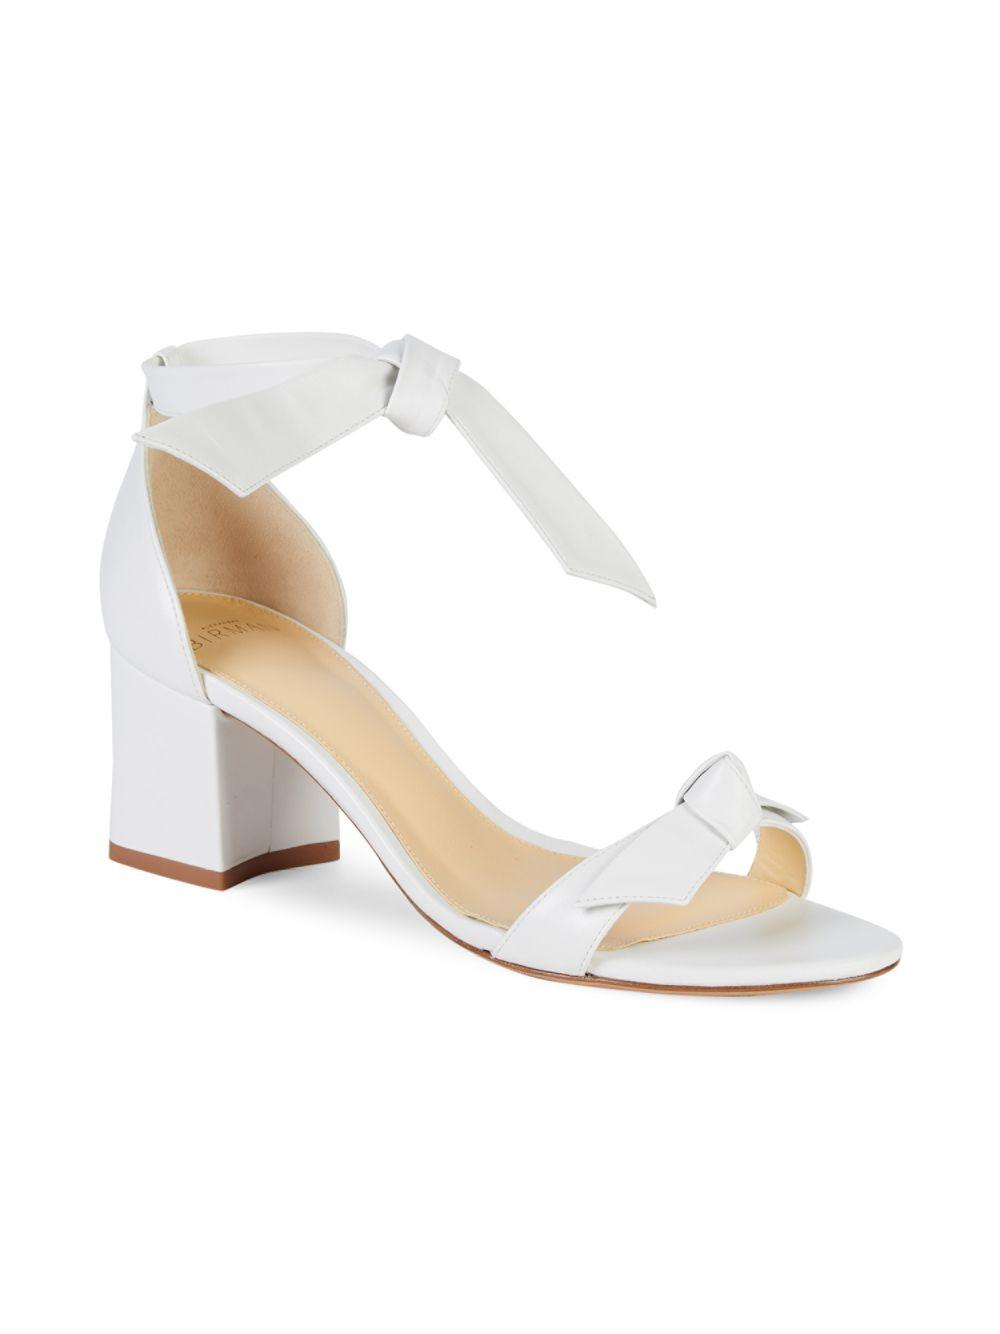 f563521ed62 Alexandre Birman Clarita Leather Heeled Sandals in White - Lyst